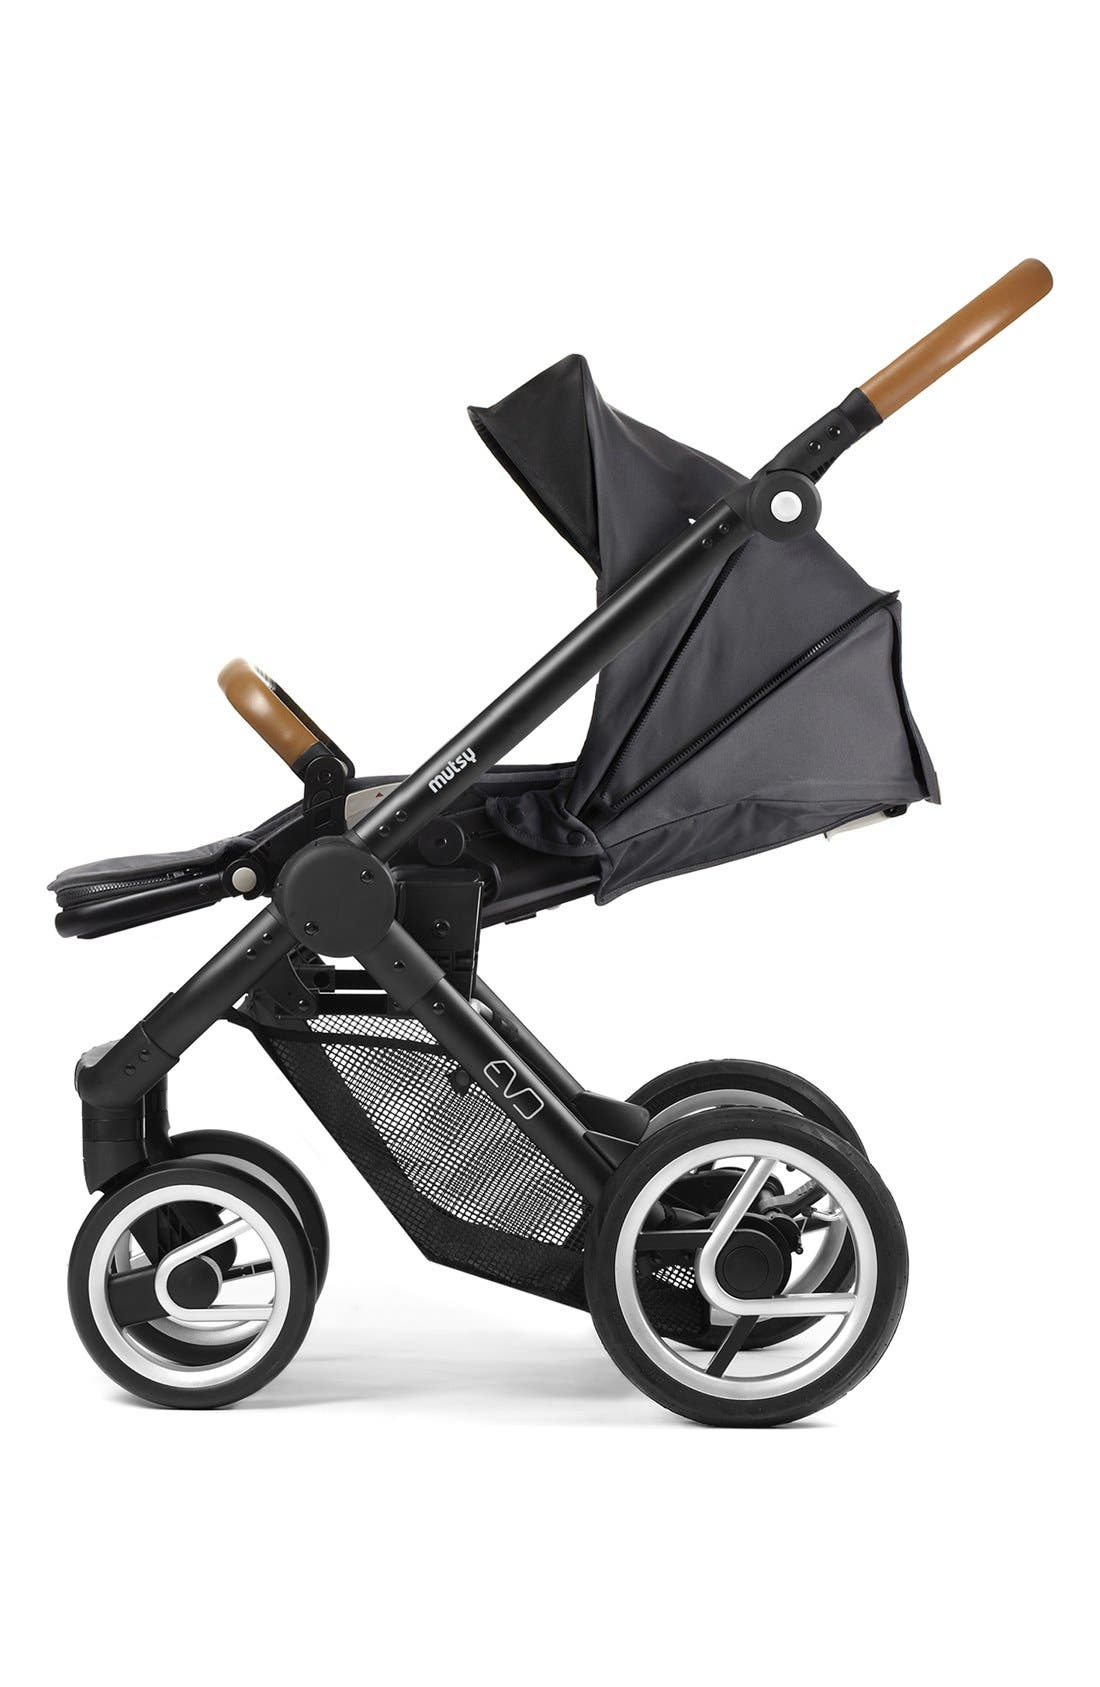 Evo - Farmer Earth Stroller,                             Alternate thumbnail 2, color,                             Brown/ Dark Grey